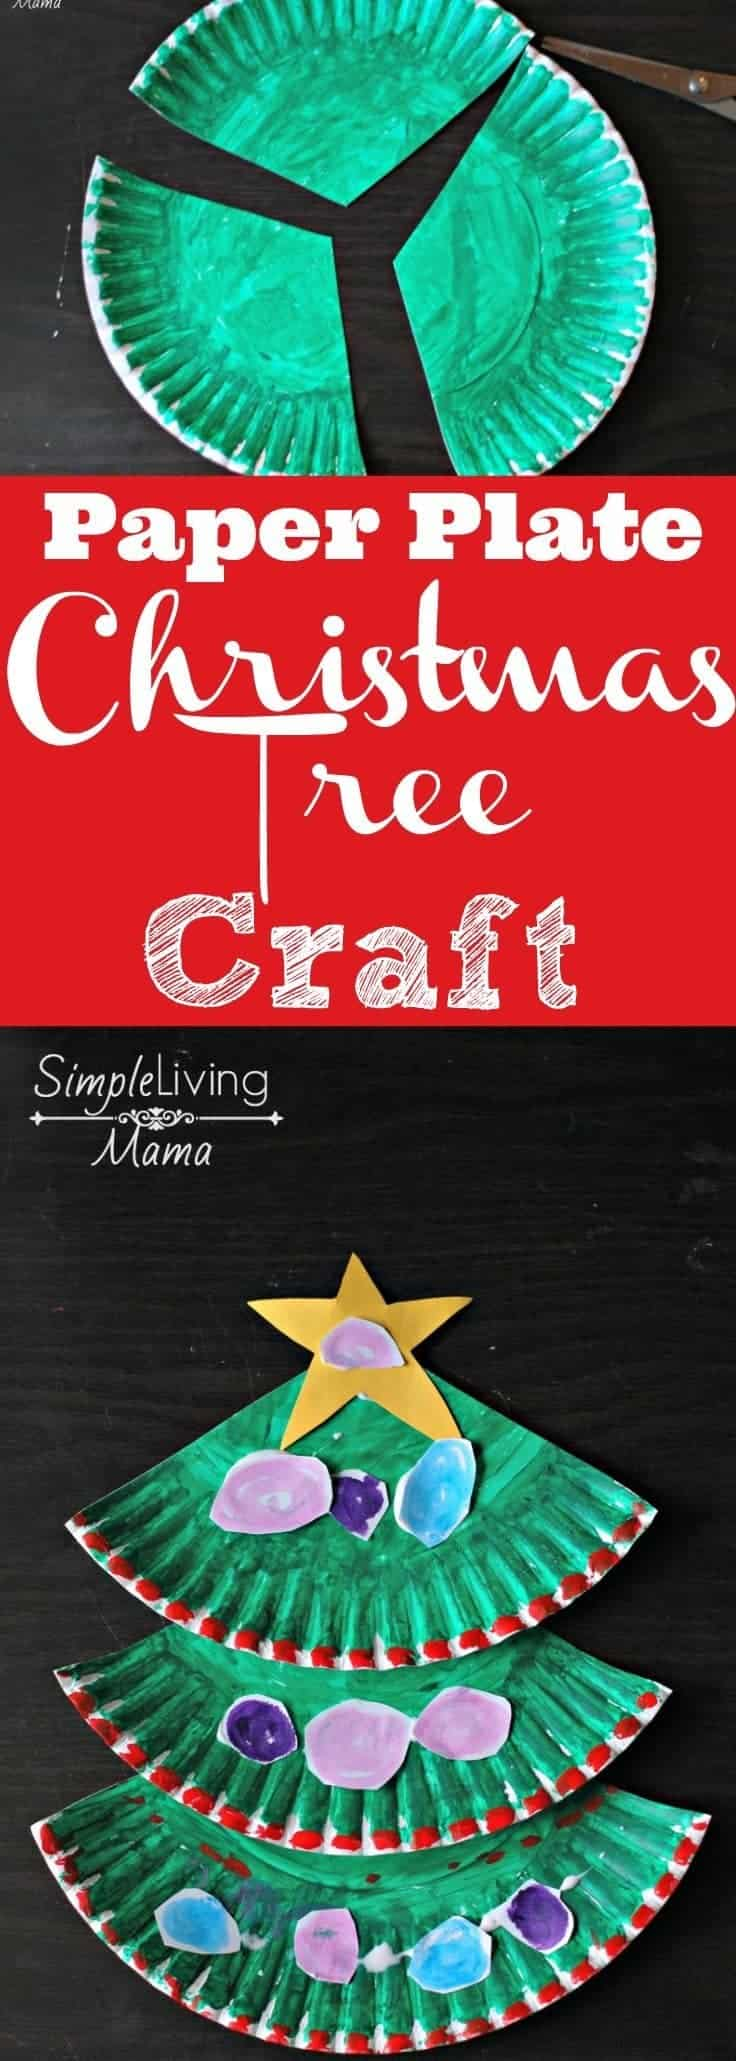 Cardboard Christmas Craft